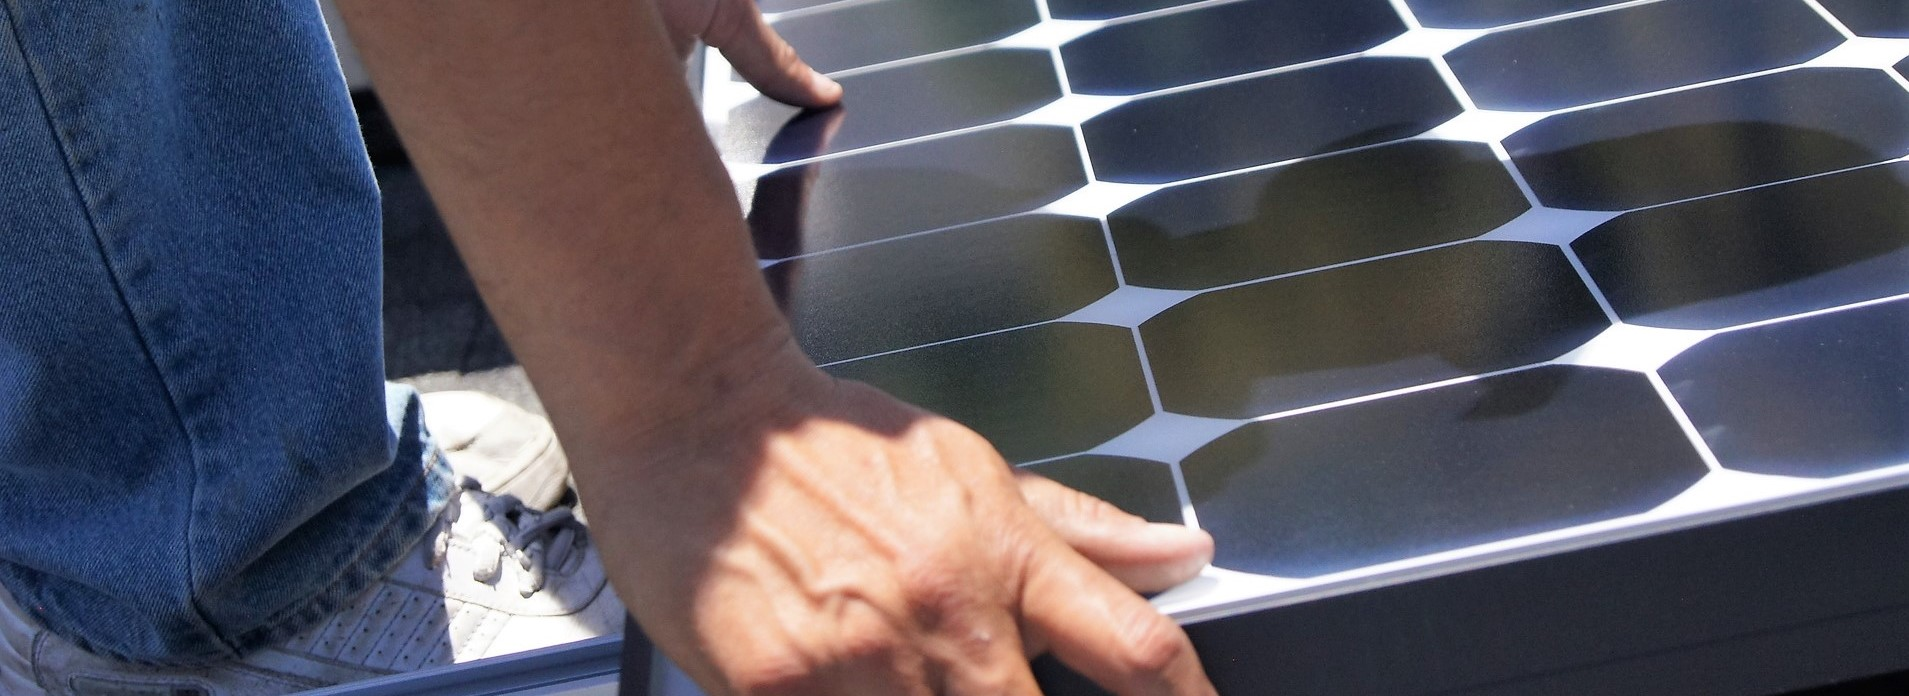 solar panel workers hand